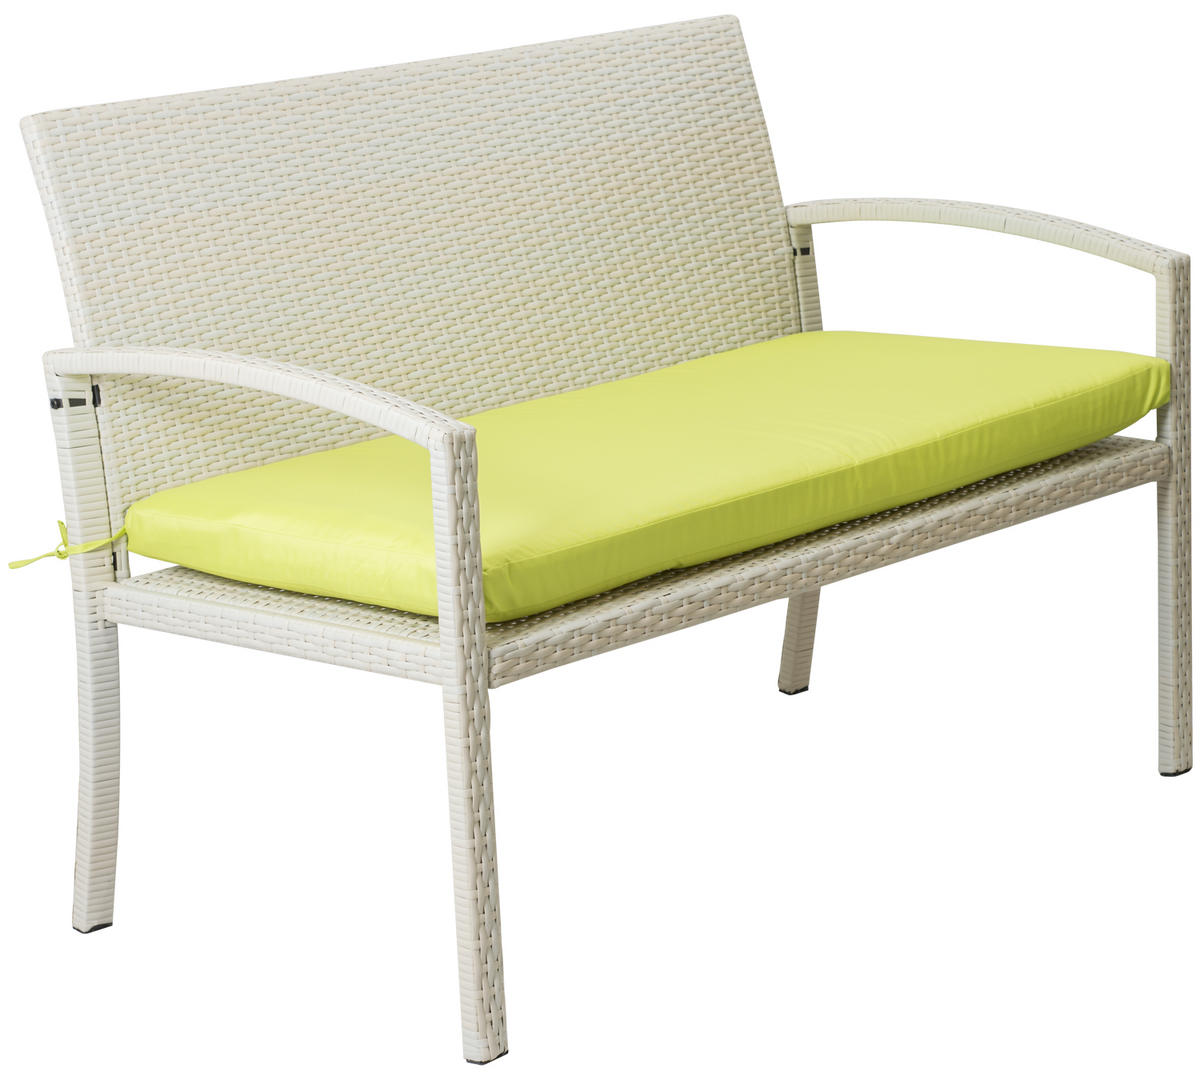 Woodside Cream Rattan Garden Bench